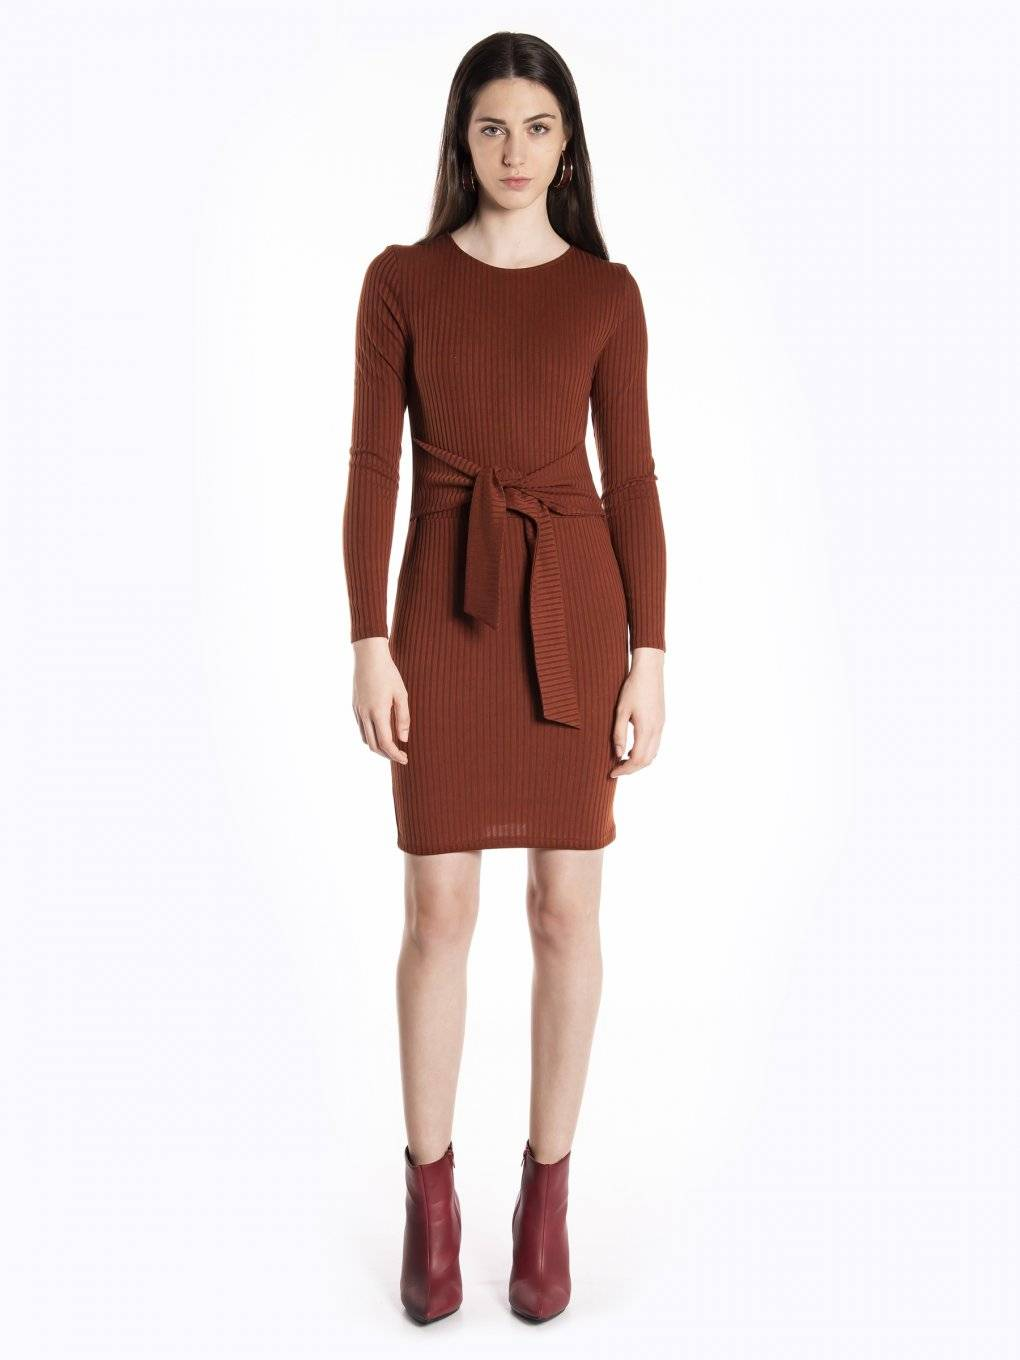 Bodycon dress with tie up detail